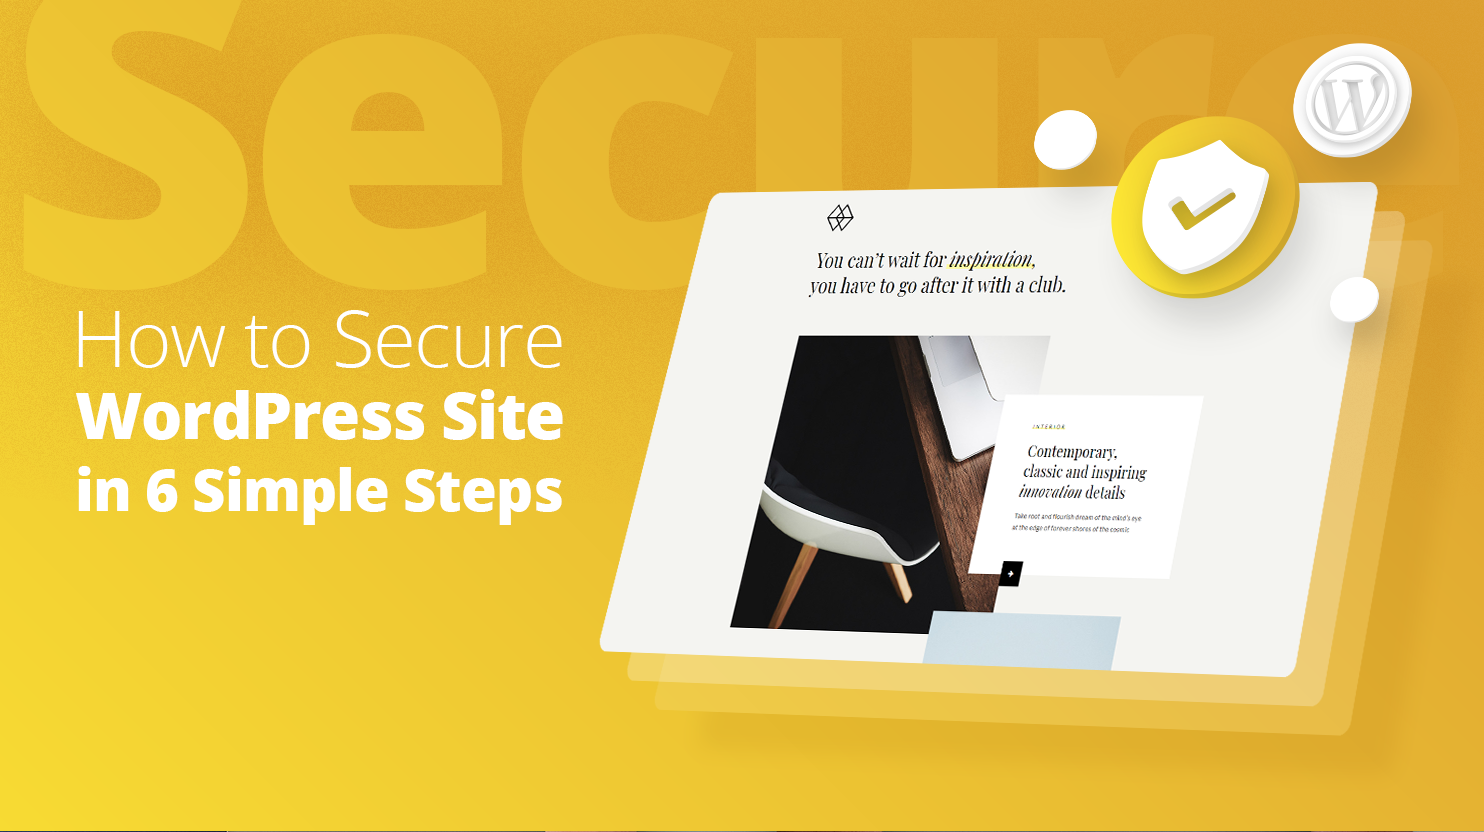 Browser with a security and wordpress logo on it, next to it says: how to secure wordpress site in 6 simple steps